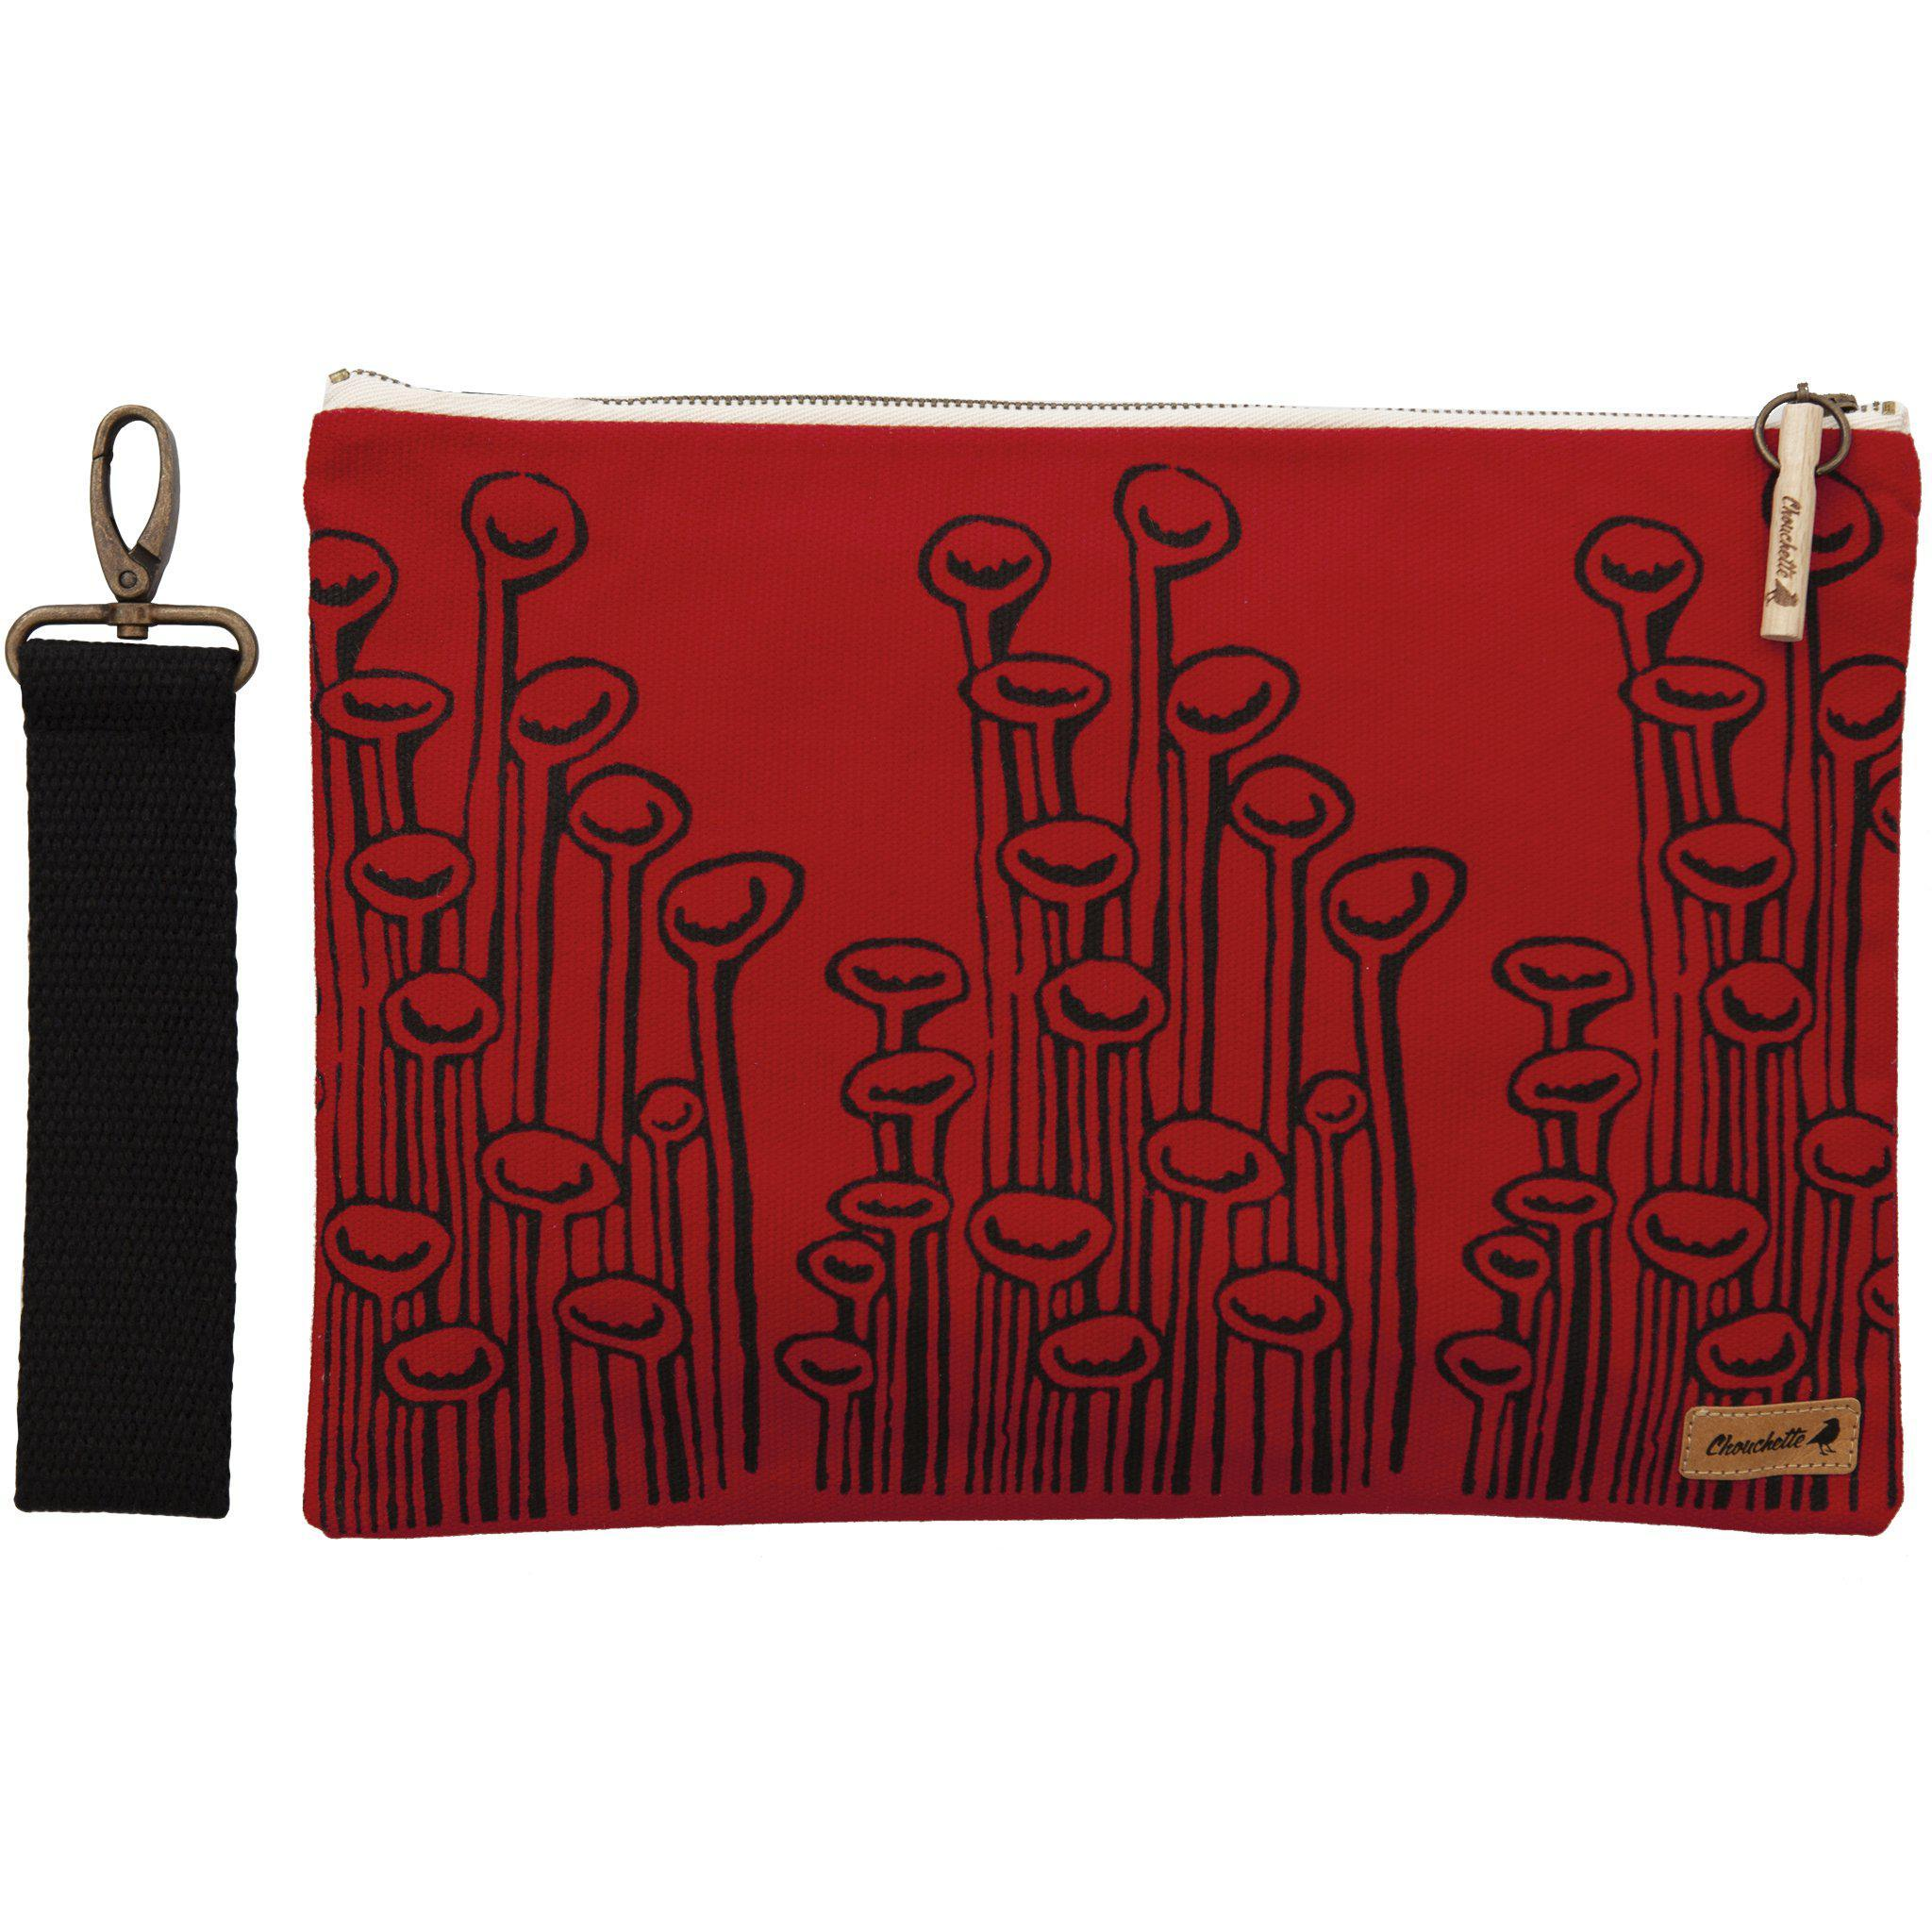 Red 'Stuck To The Floor' iPad sleeve, clutch with it's detachable, black, cotton wristlet- Devrim Studio